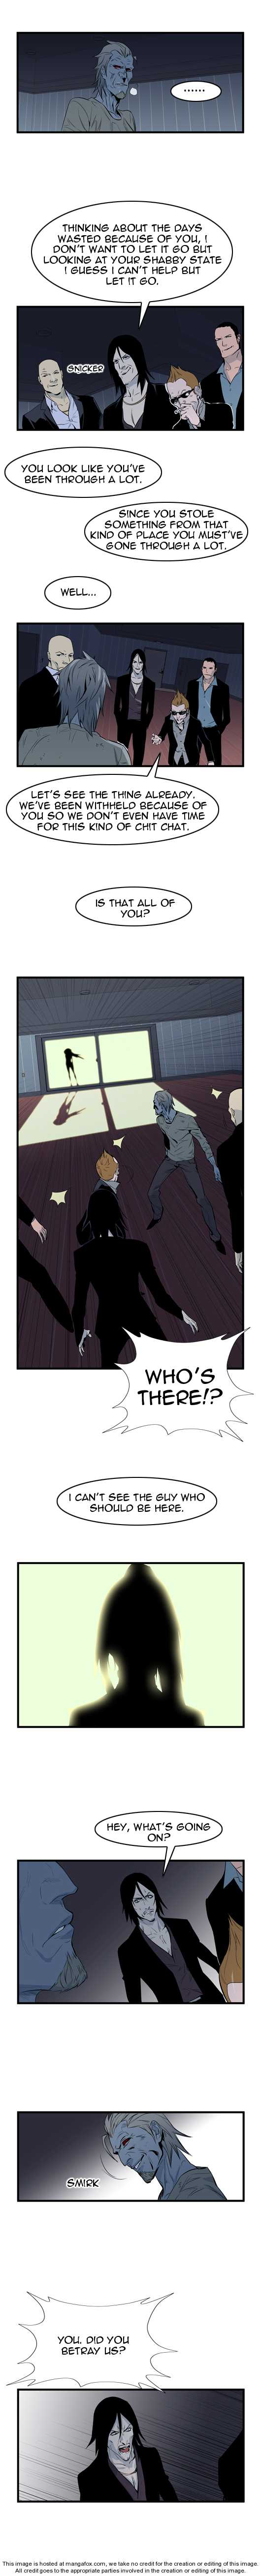 Noblesse 58 Page 2